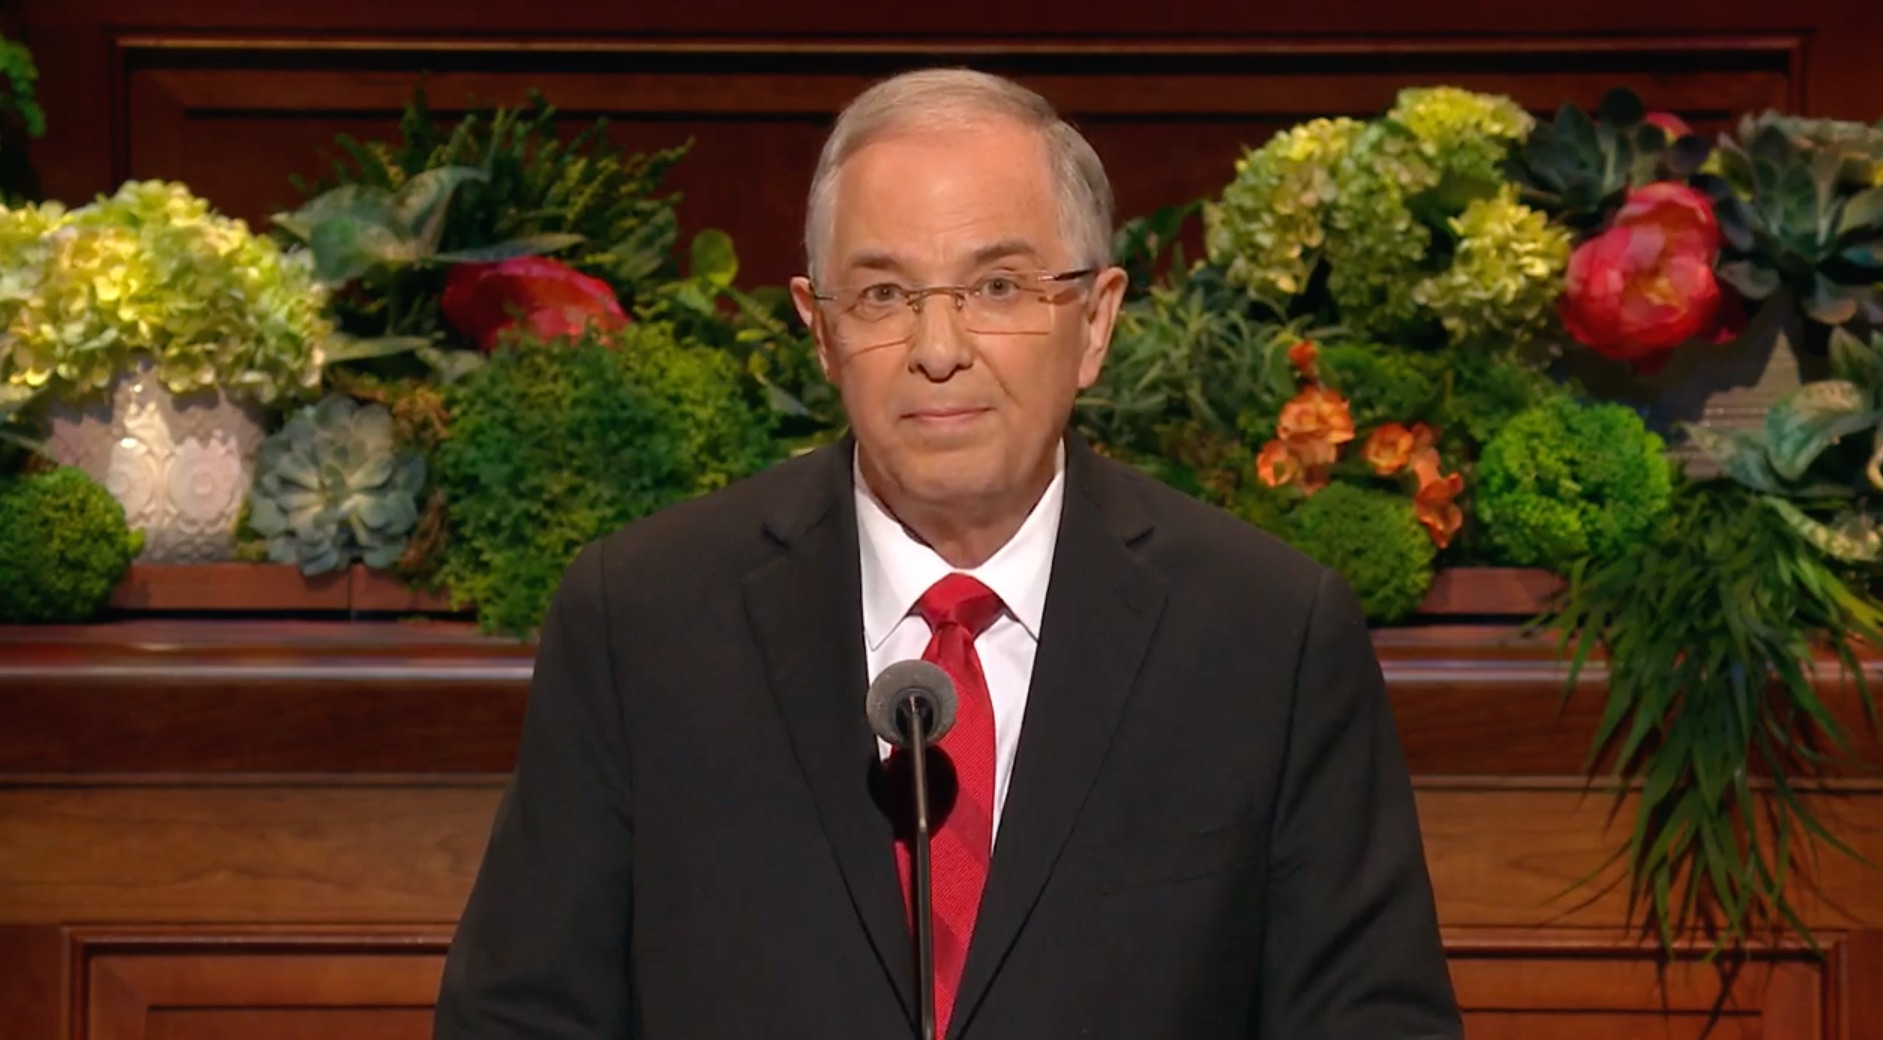 Elder Neil L. Andersen of the Quorum of the Twelve Apostles gives his address during the Saturday afternoon session of the 189th Annual General Conference on April 6, 2019.